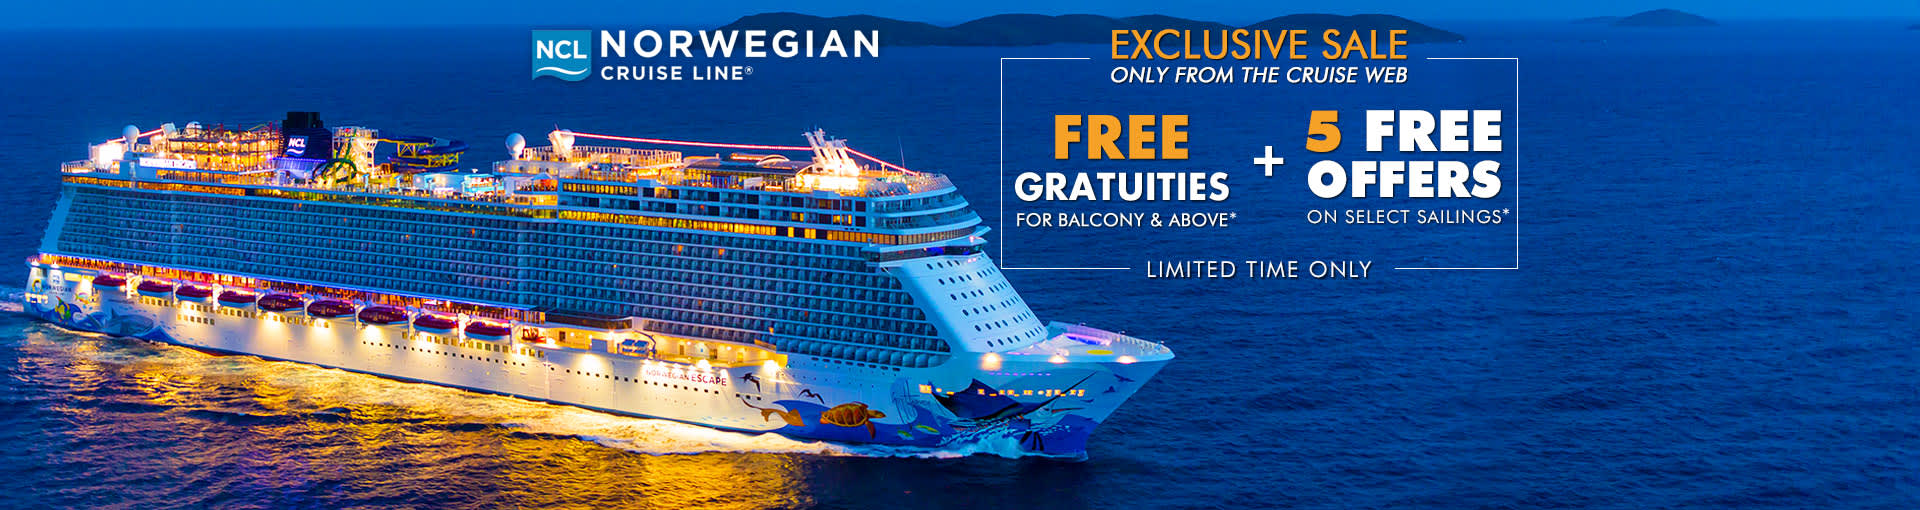 Norwegian Cruise Line: Free Gratuities